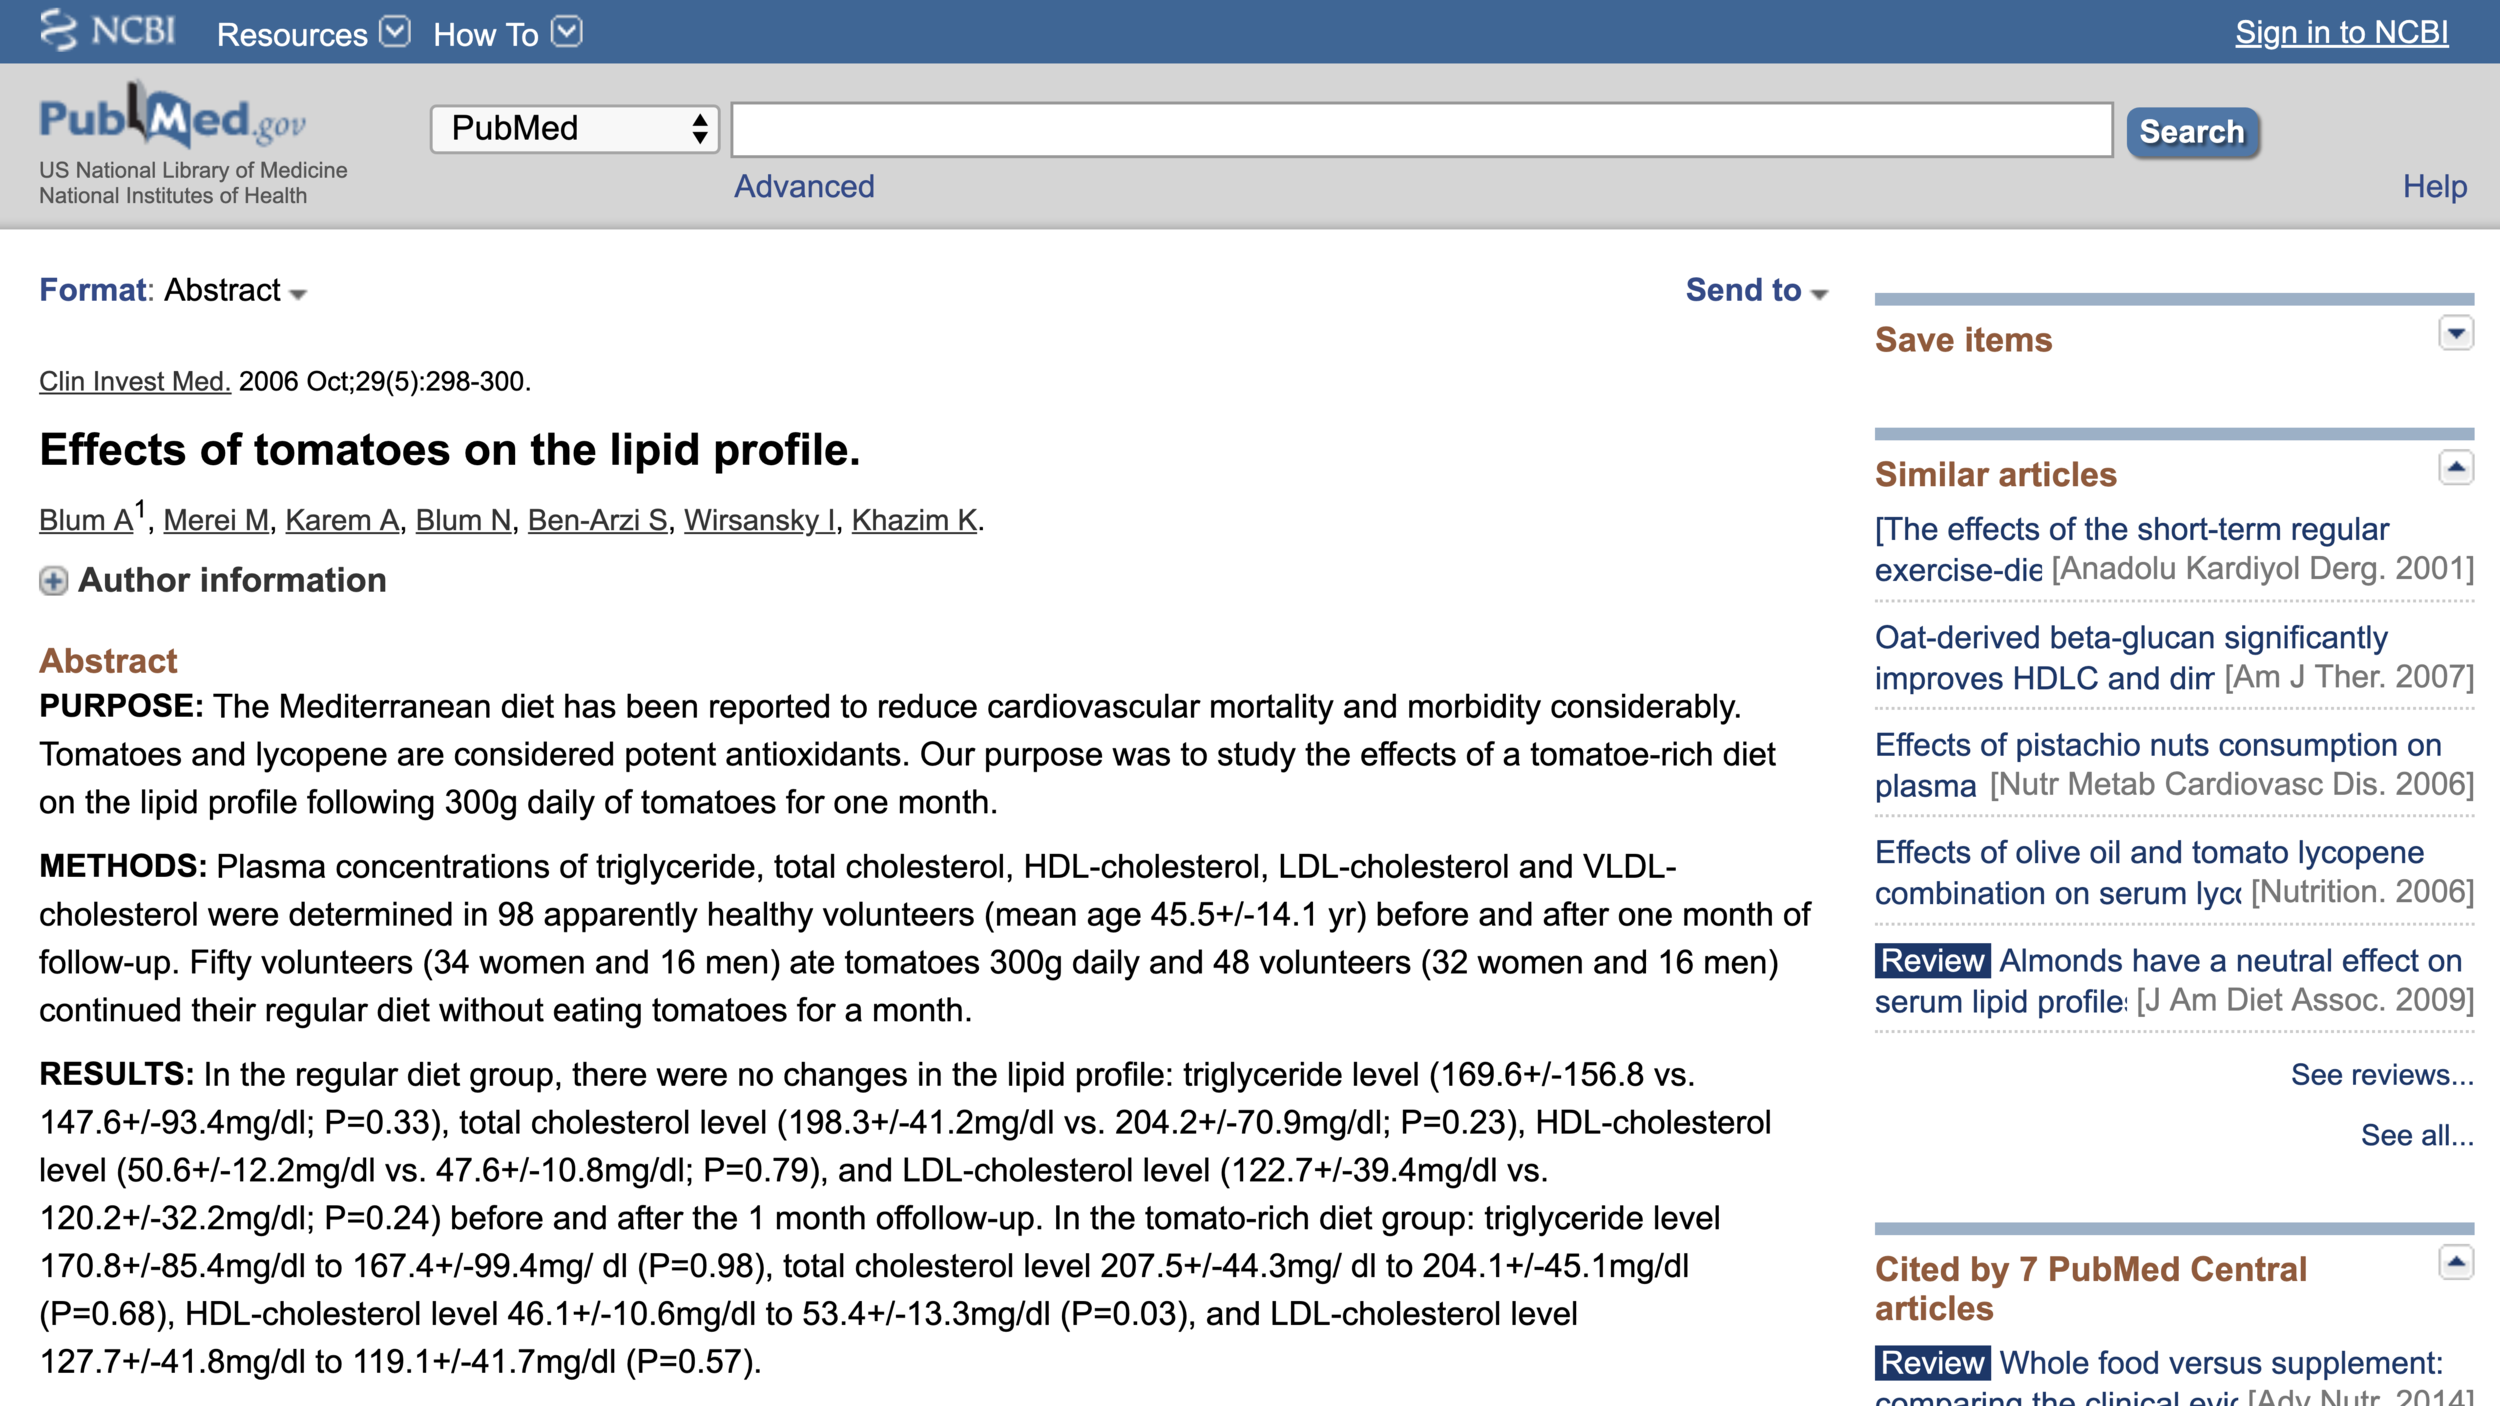 Link to the abstract shown just above